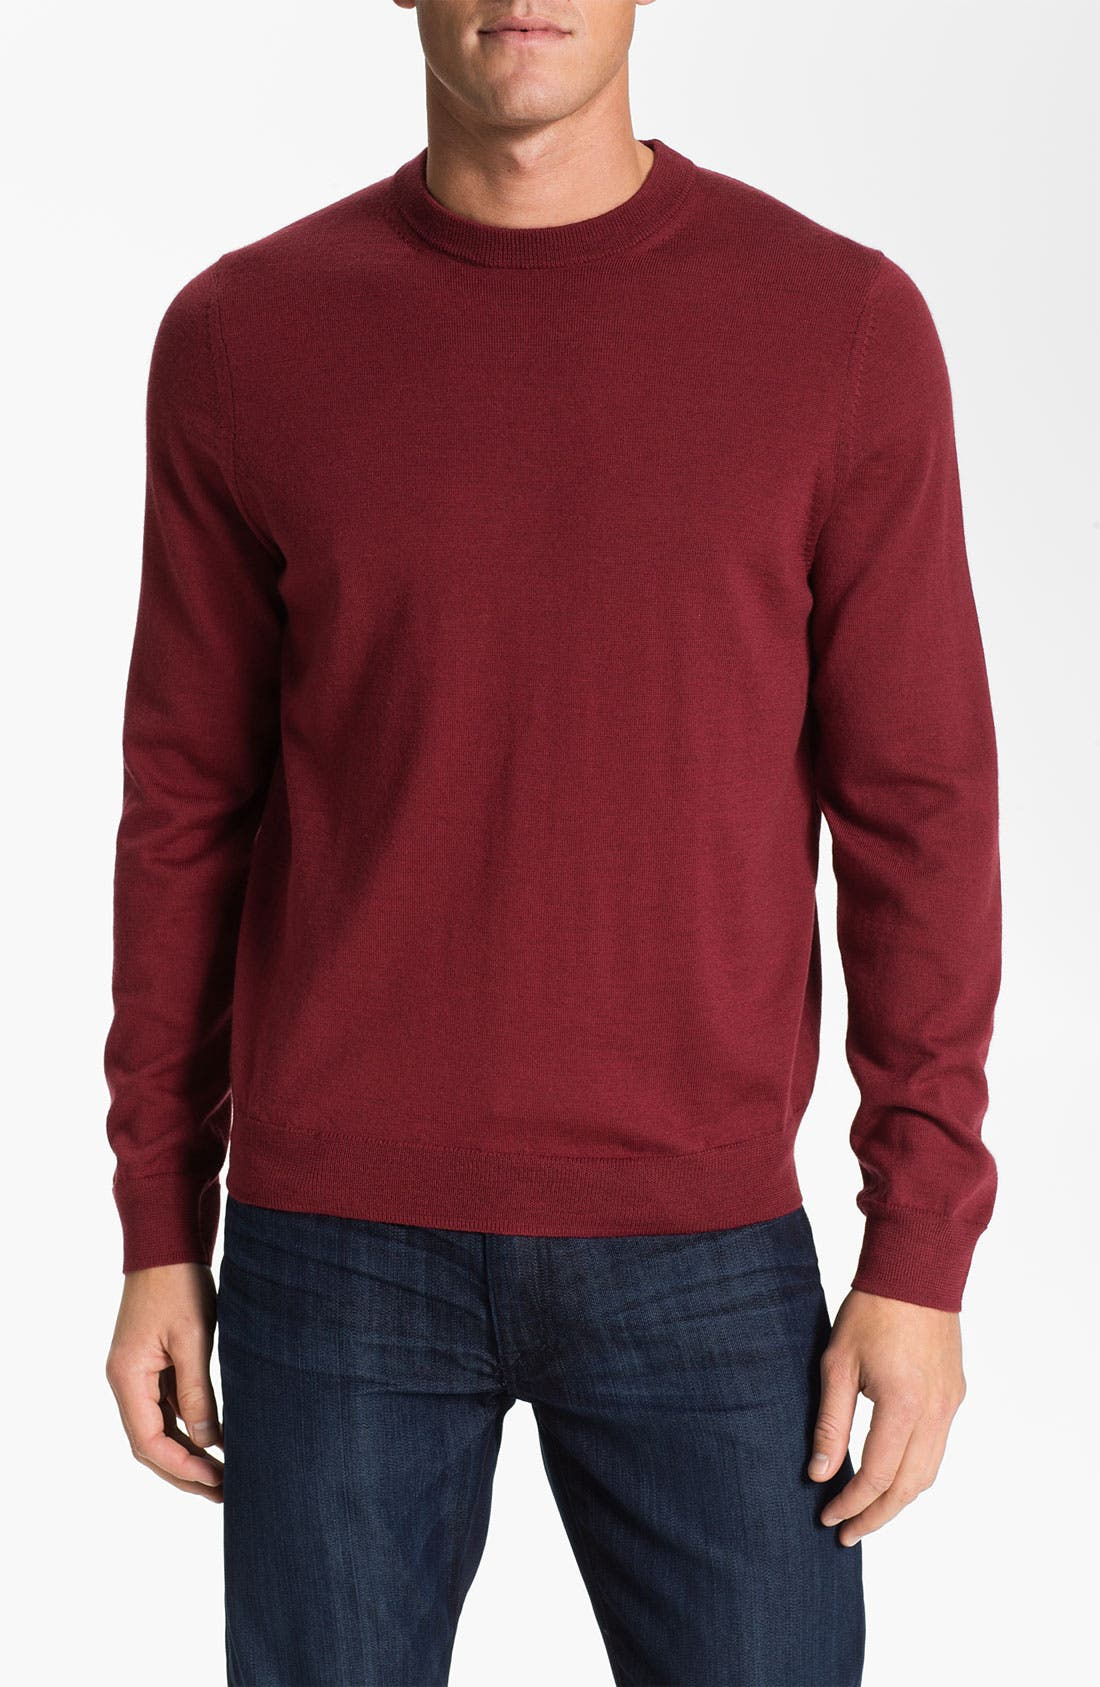 Main Image - Nordstrom Traditional Fit Merino Wool Crewneck Sweater